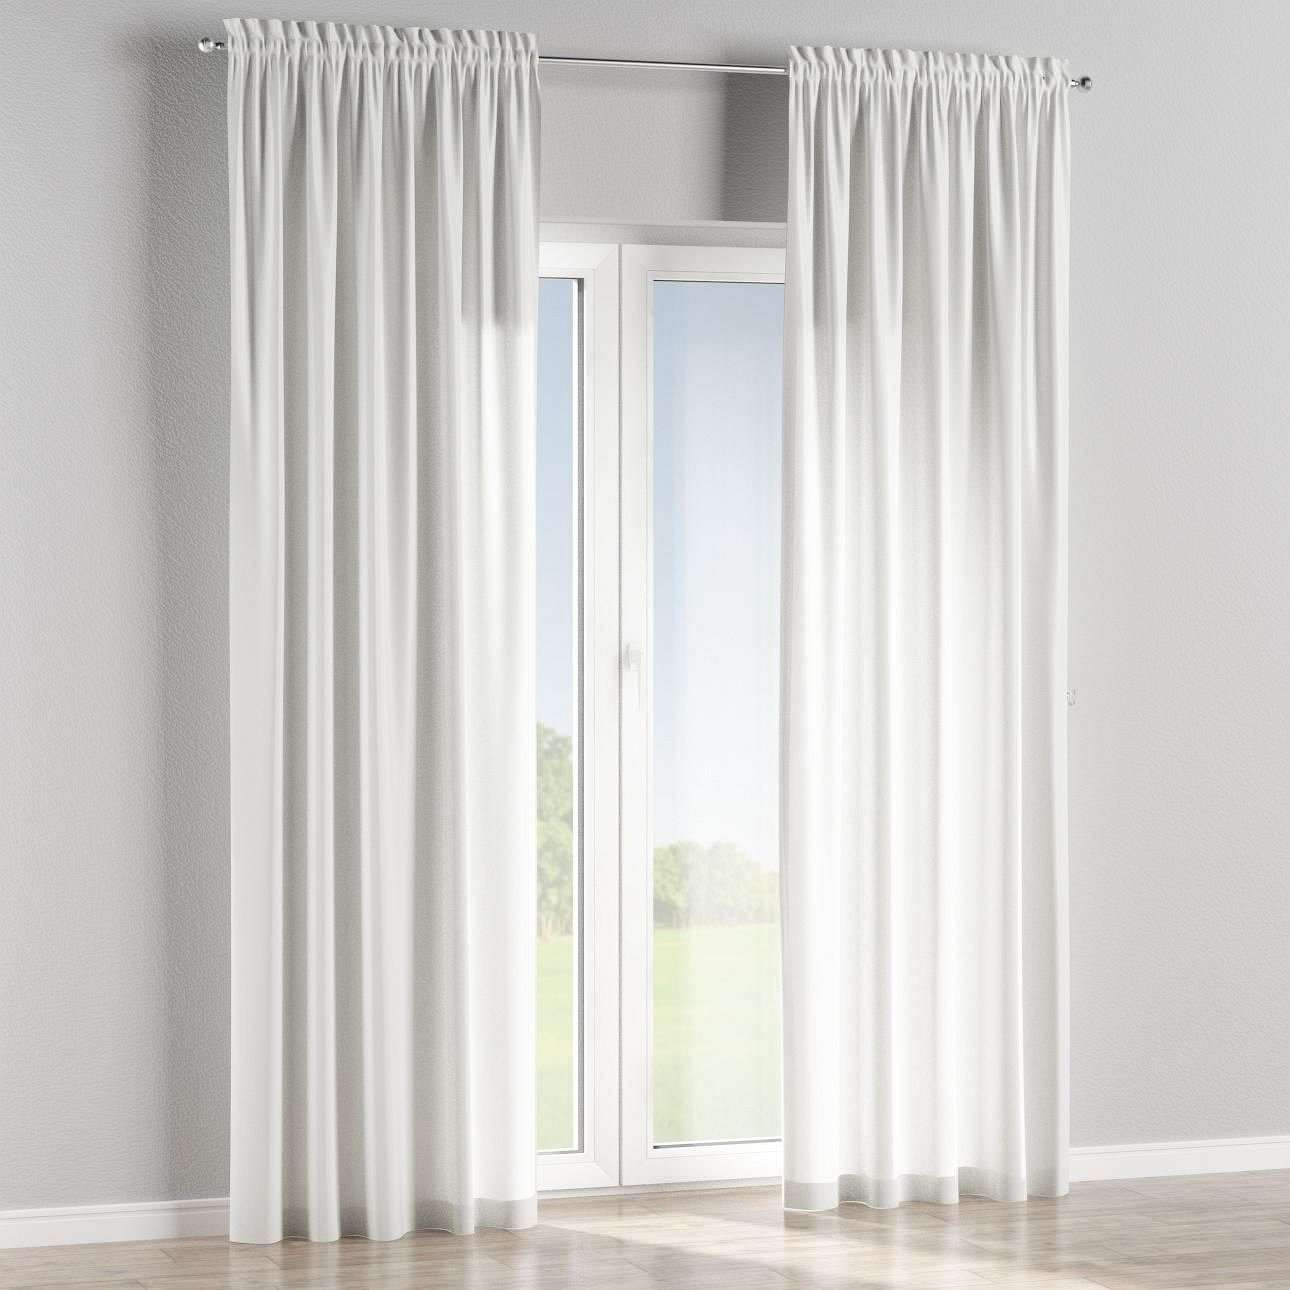 Slot and frill lined curtains in collection Rustica, fabric: 138-15